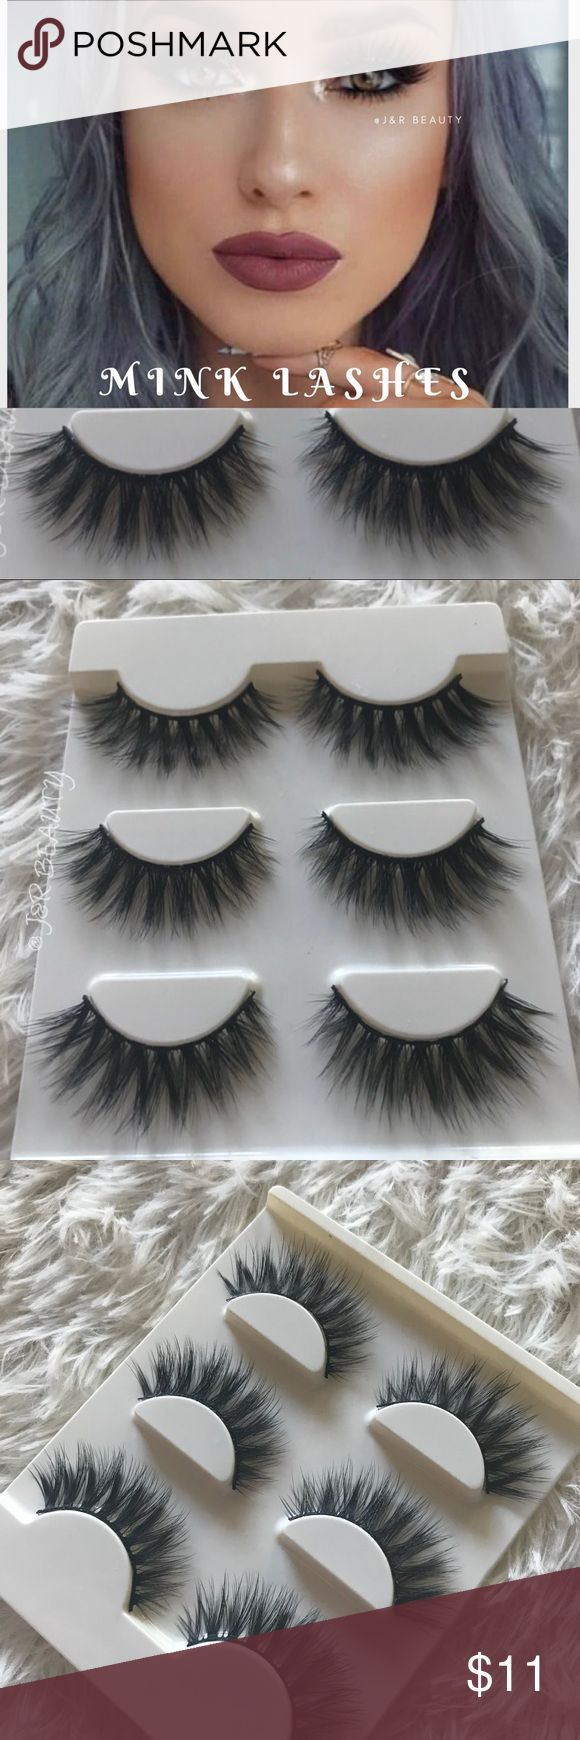 Mink lashes 3 Pairs +$2 Add on eyelash Applicator  +$3 Add on eyelash glue Please message me if you want to add them.   ❌No Offers ✅ Bundle &  Save  # tags Iconic, mink, red cherry eyelashes, house of lashes, doll, kawaii, case, full, natural,  Koko, Ardell, wispies, Demi , makeup, Iconic, mink, red cherry eyelashes, house of lashes, doll, kawaii, case, full, natural,  Koko, Ardell, wispies, Demi , makeup, mascara, eyelash applicator, Mykonos Mink , Lashes , wispy ,eyelash case, mink lashes…